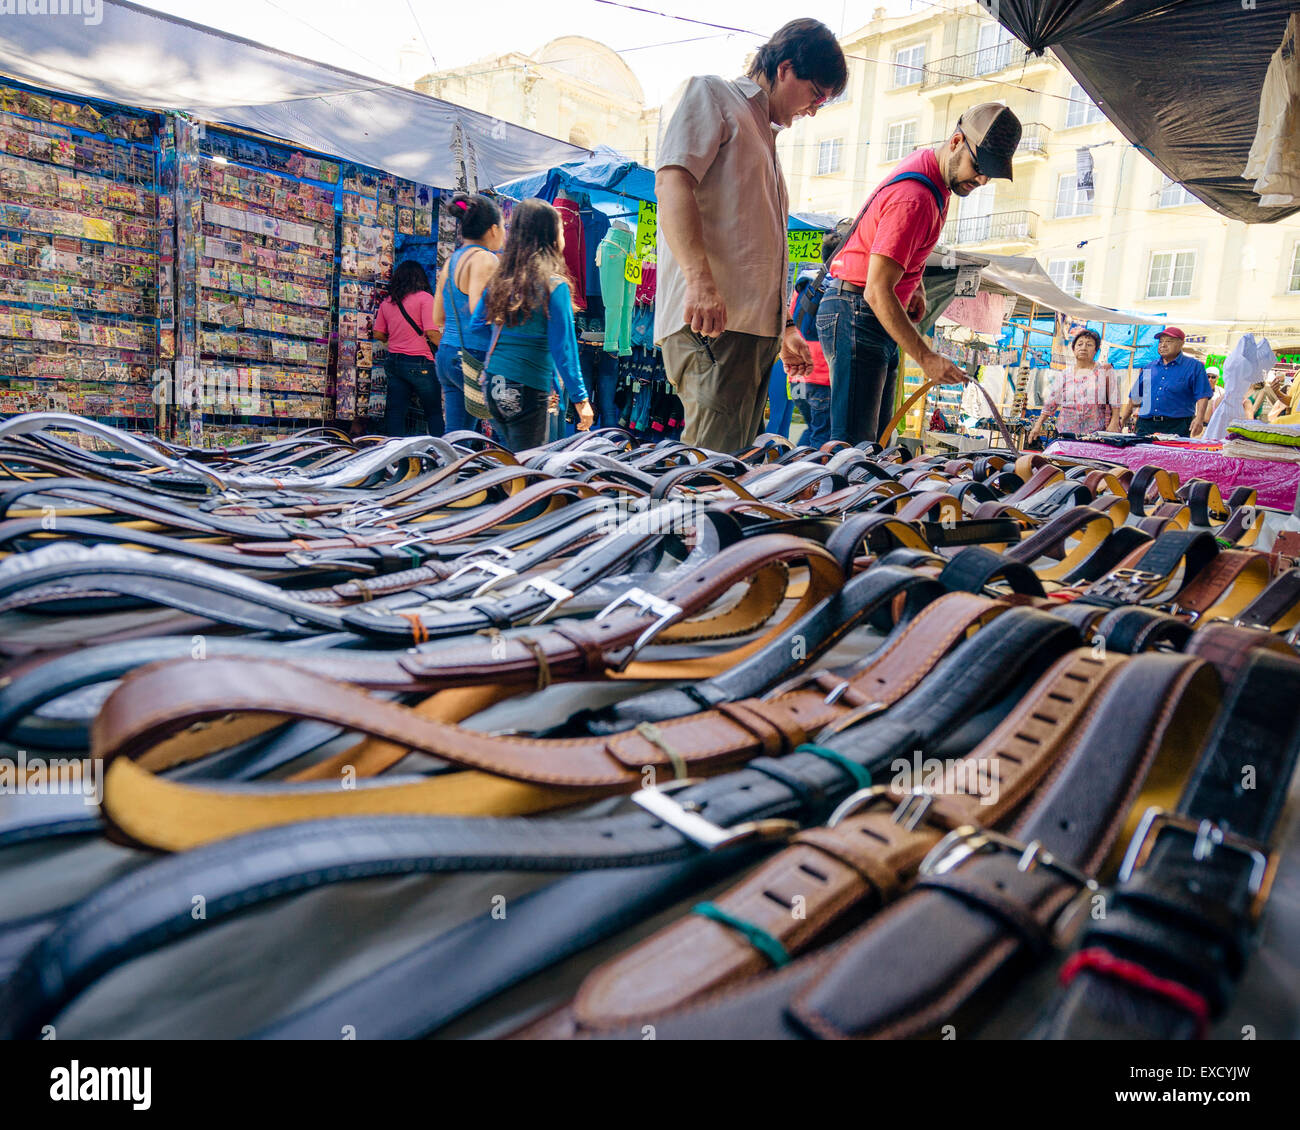 Men shopping for leather belts at the Zocalo market in Oaxaca Mexico - Stock Image